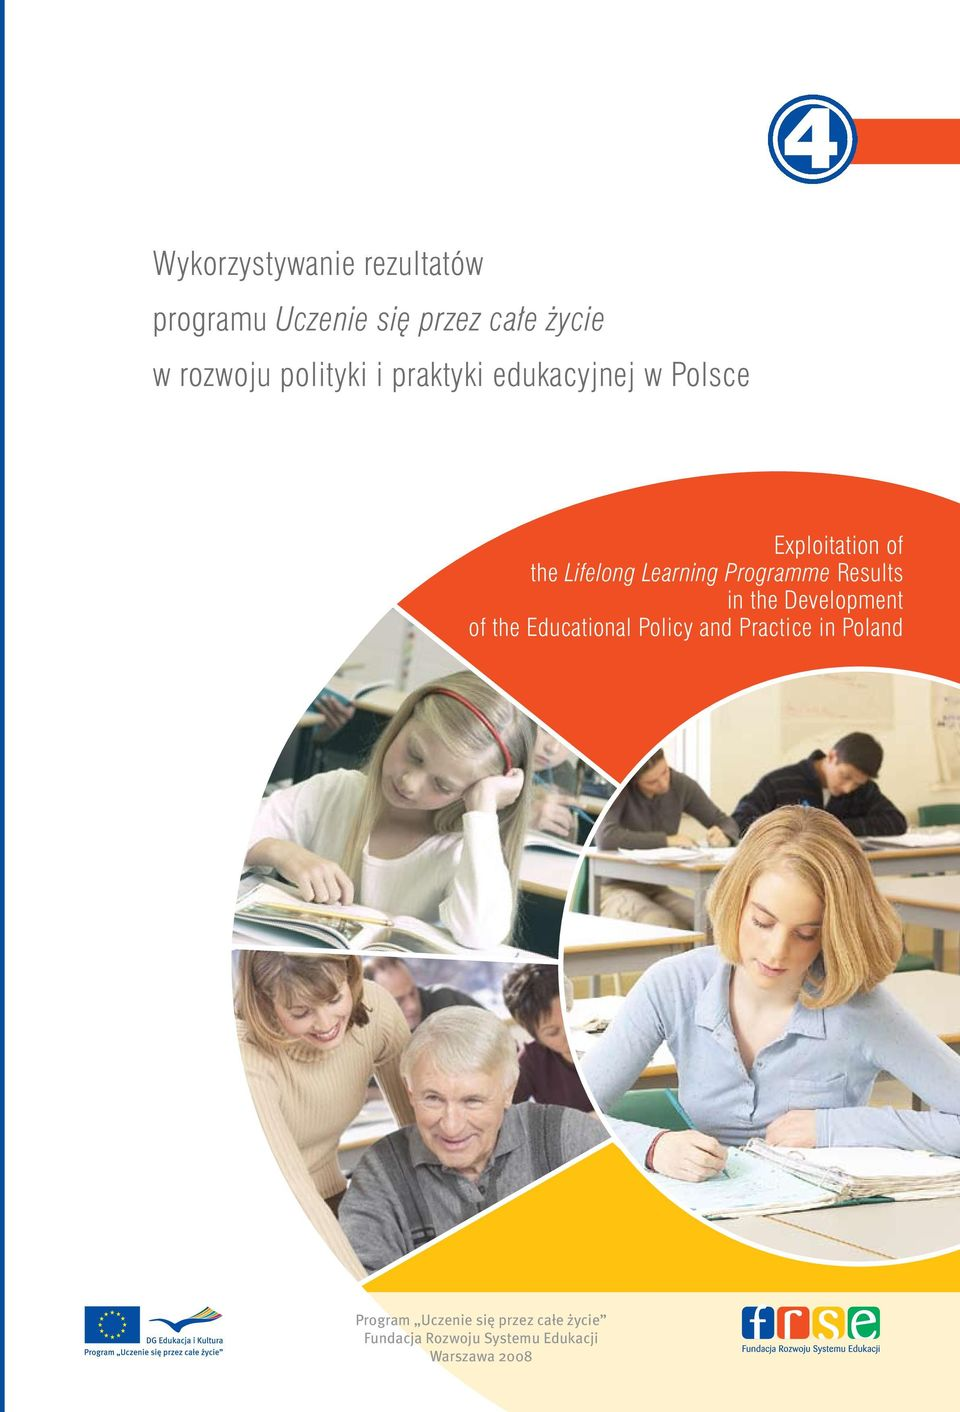 Programme Results in the Development of the Educational Policy and Practice in